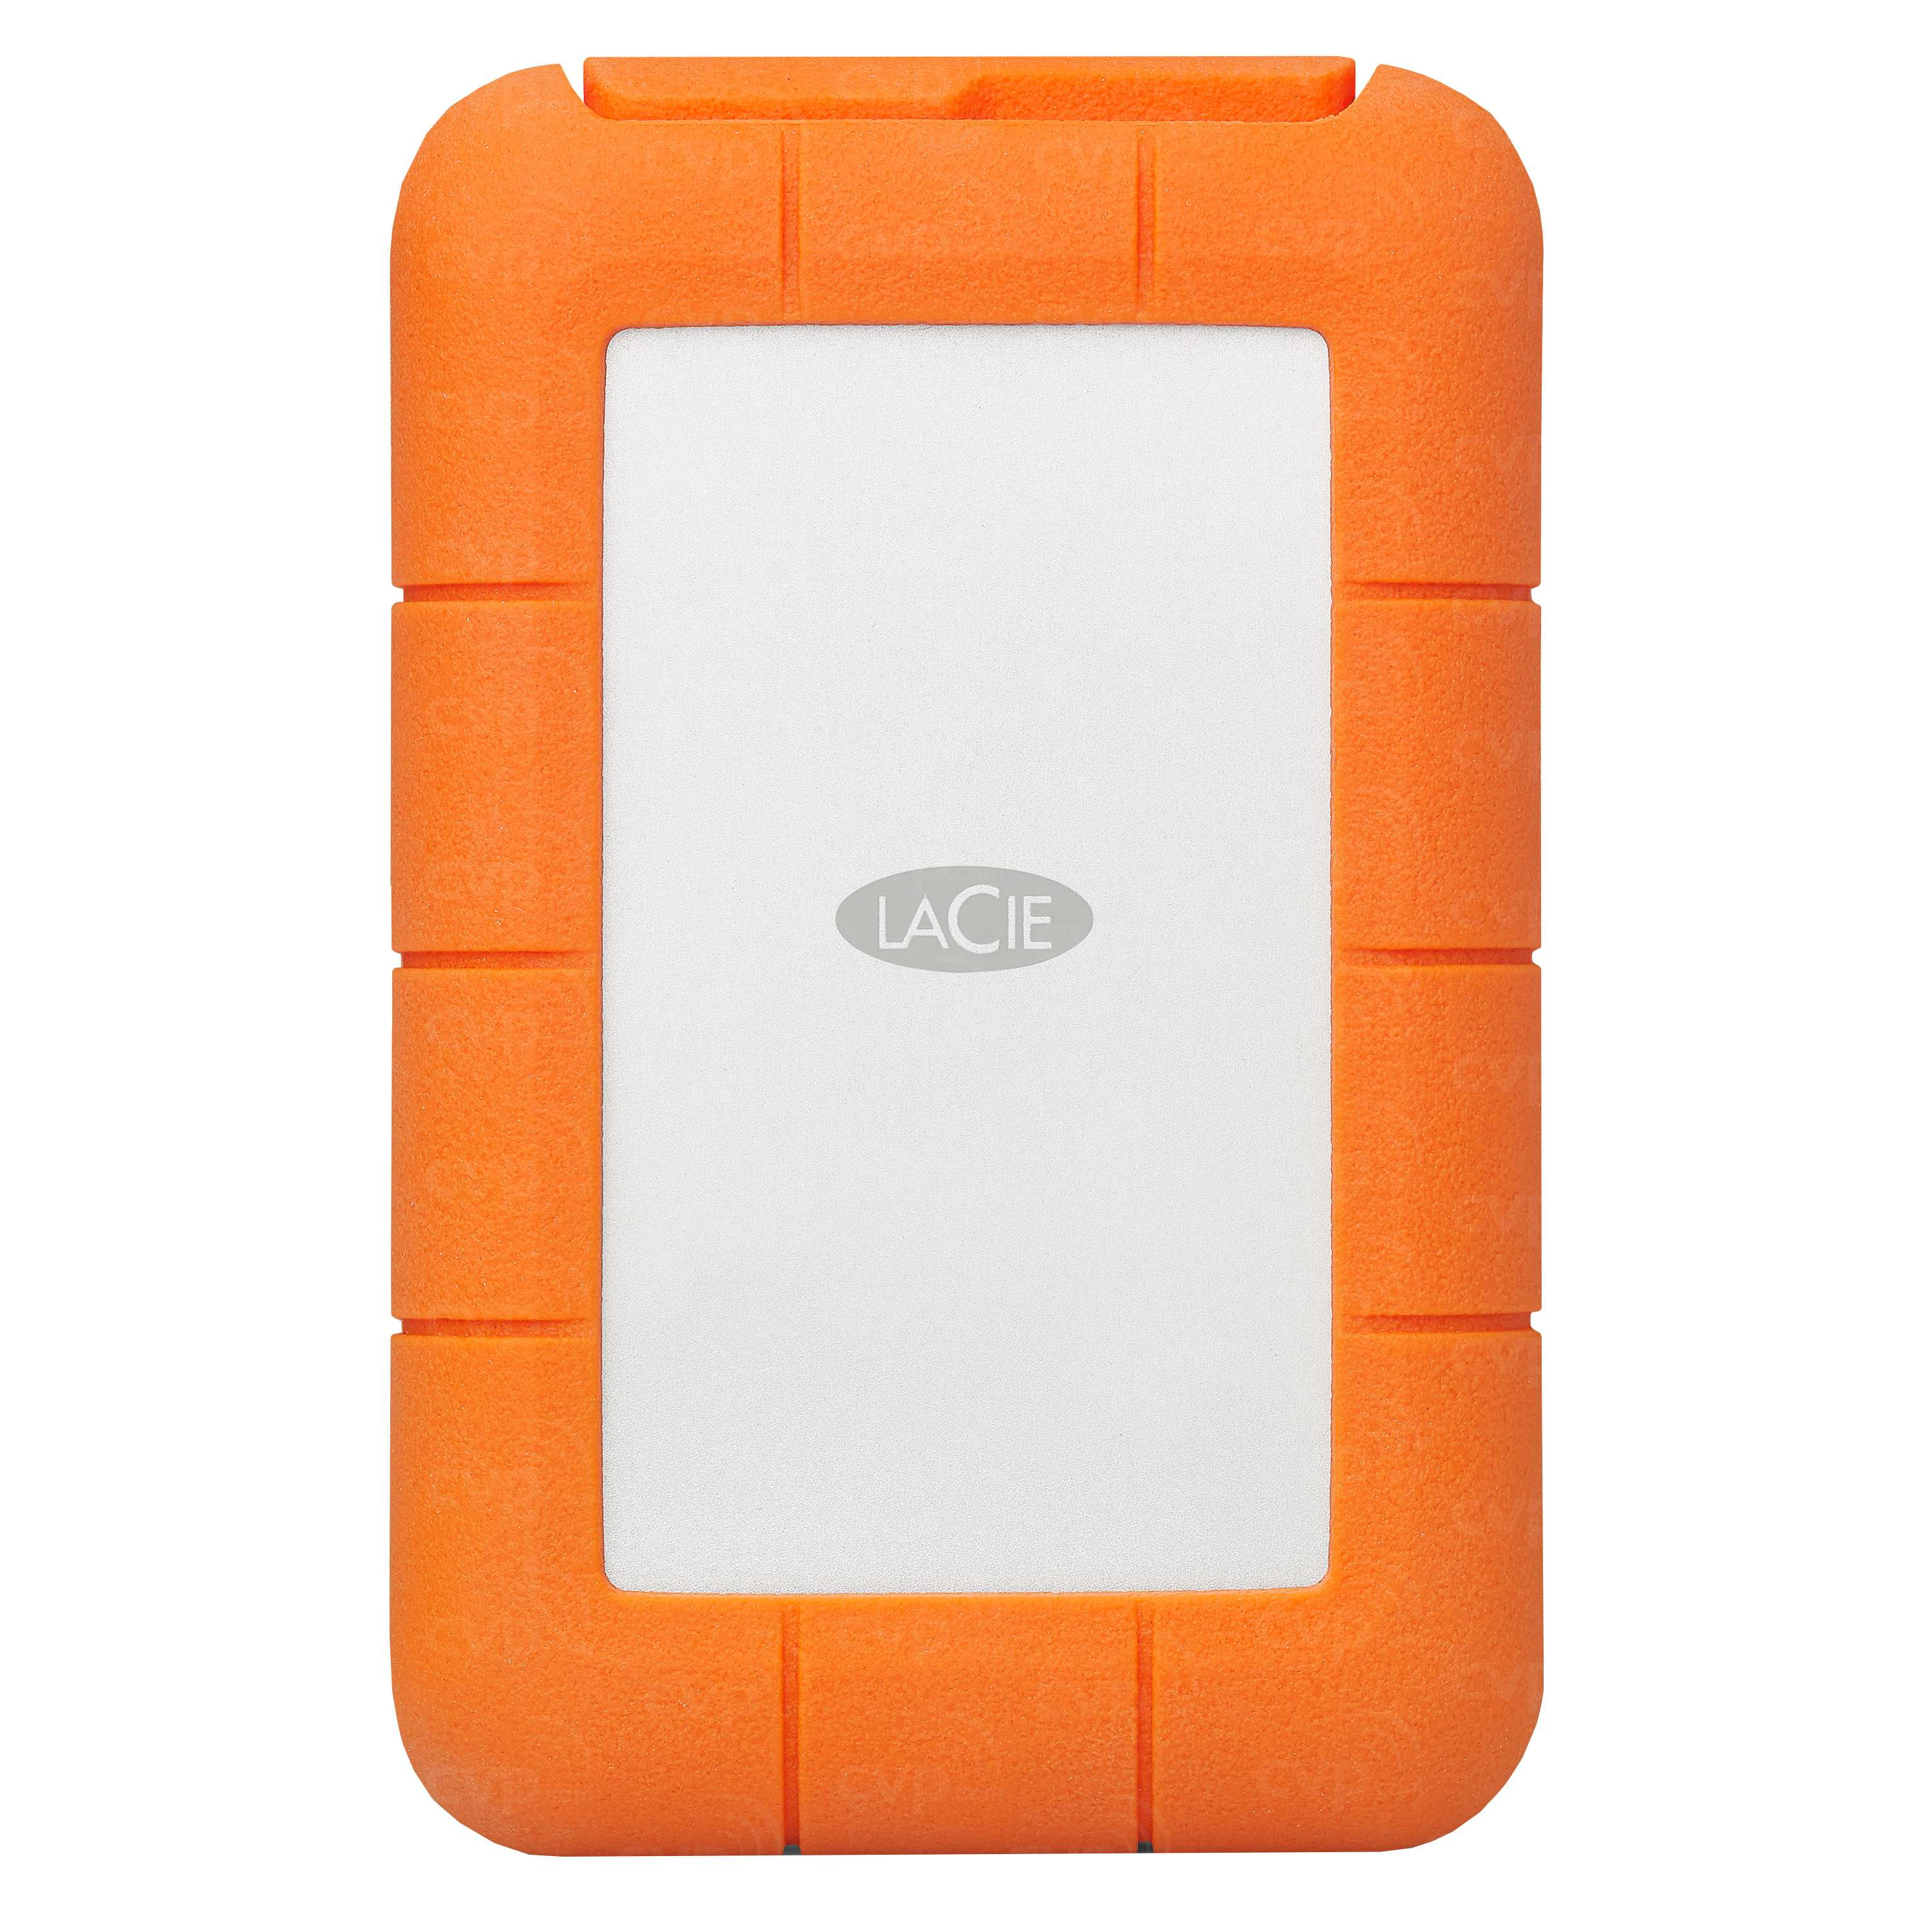 press rug mini ia ca en kits pr canada pocket high lacie rugged company master kit shot